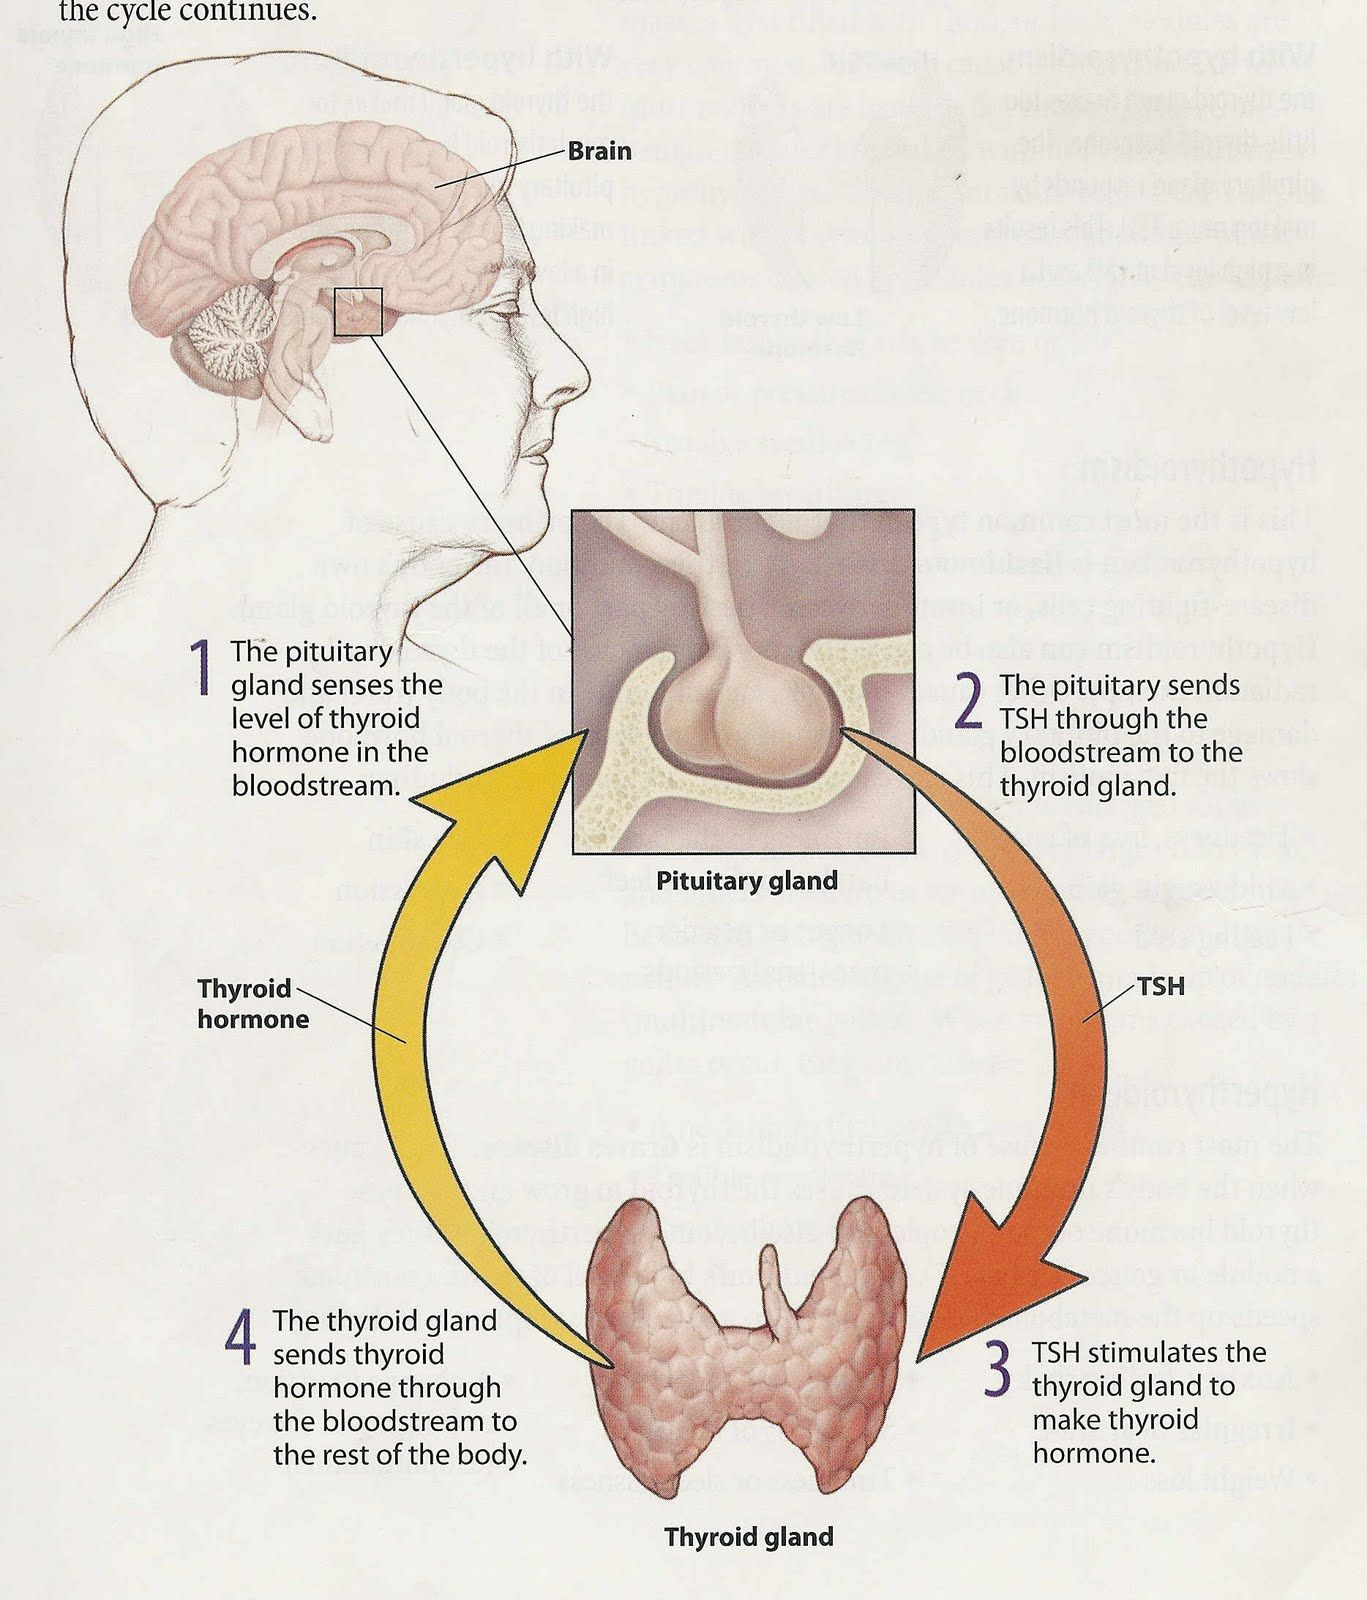 medium resolution of pituitary here s how they work the pituitary gland monitors the